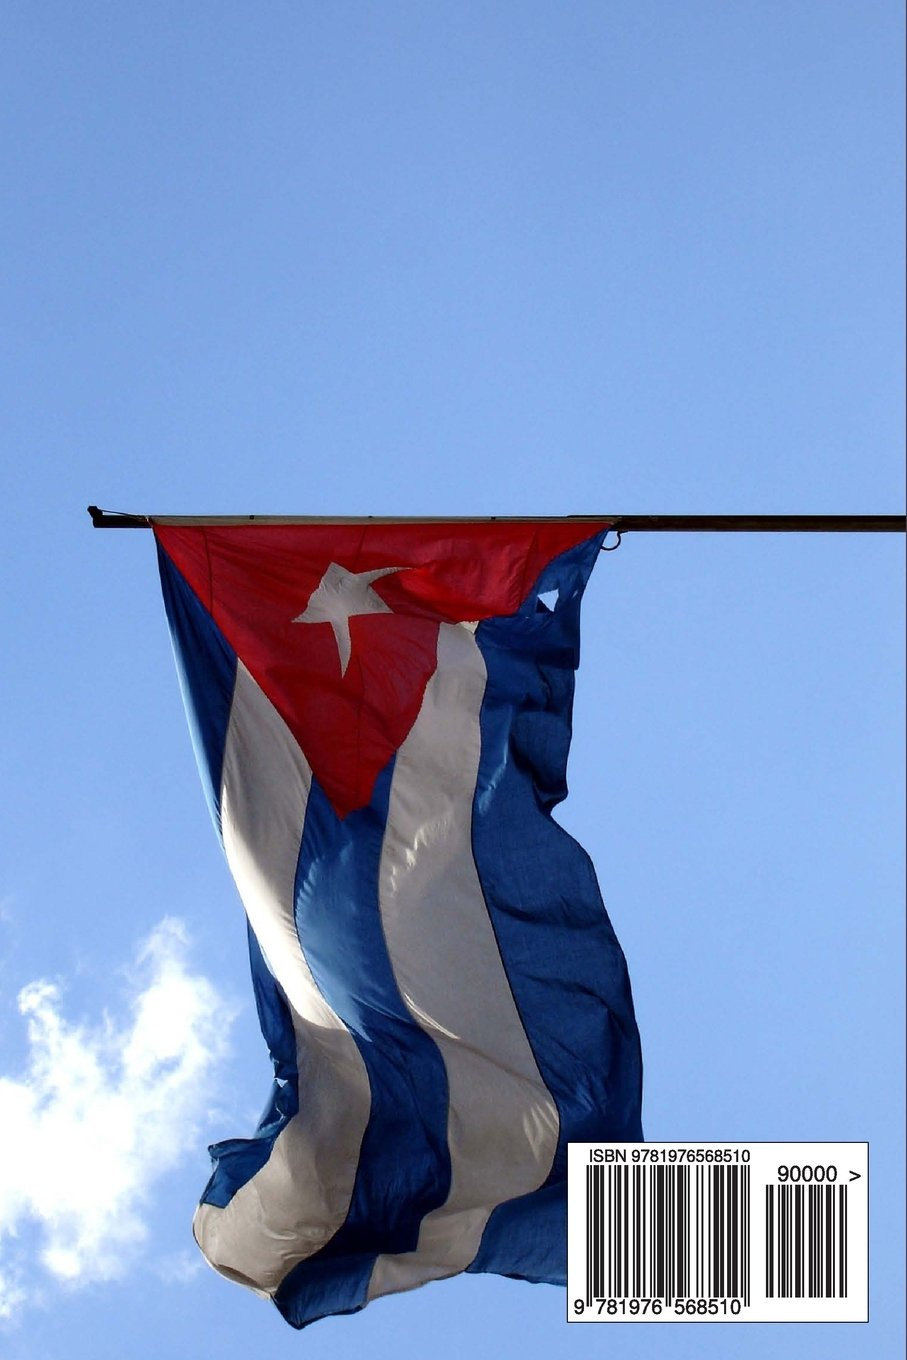 Cuban Flag Flying in the Wind in Havana Cuba Journal: Take